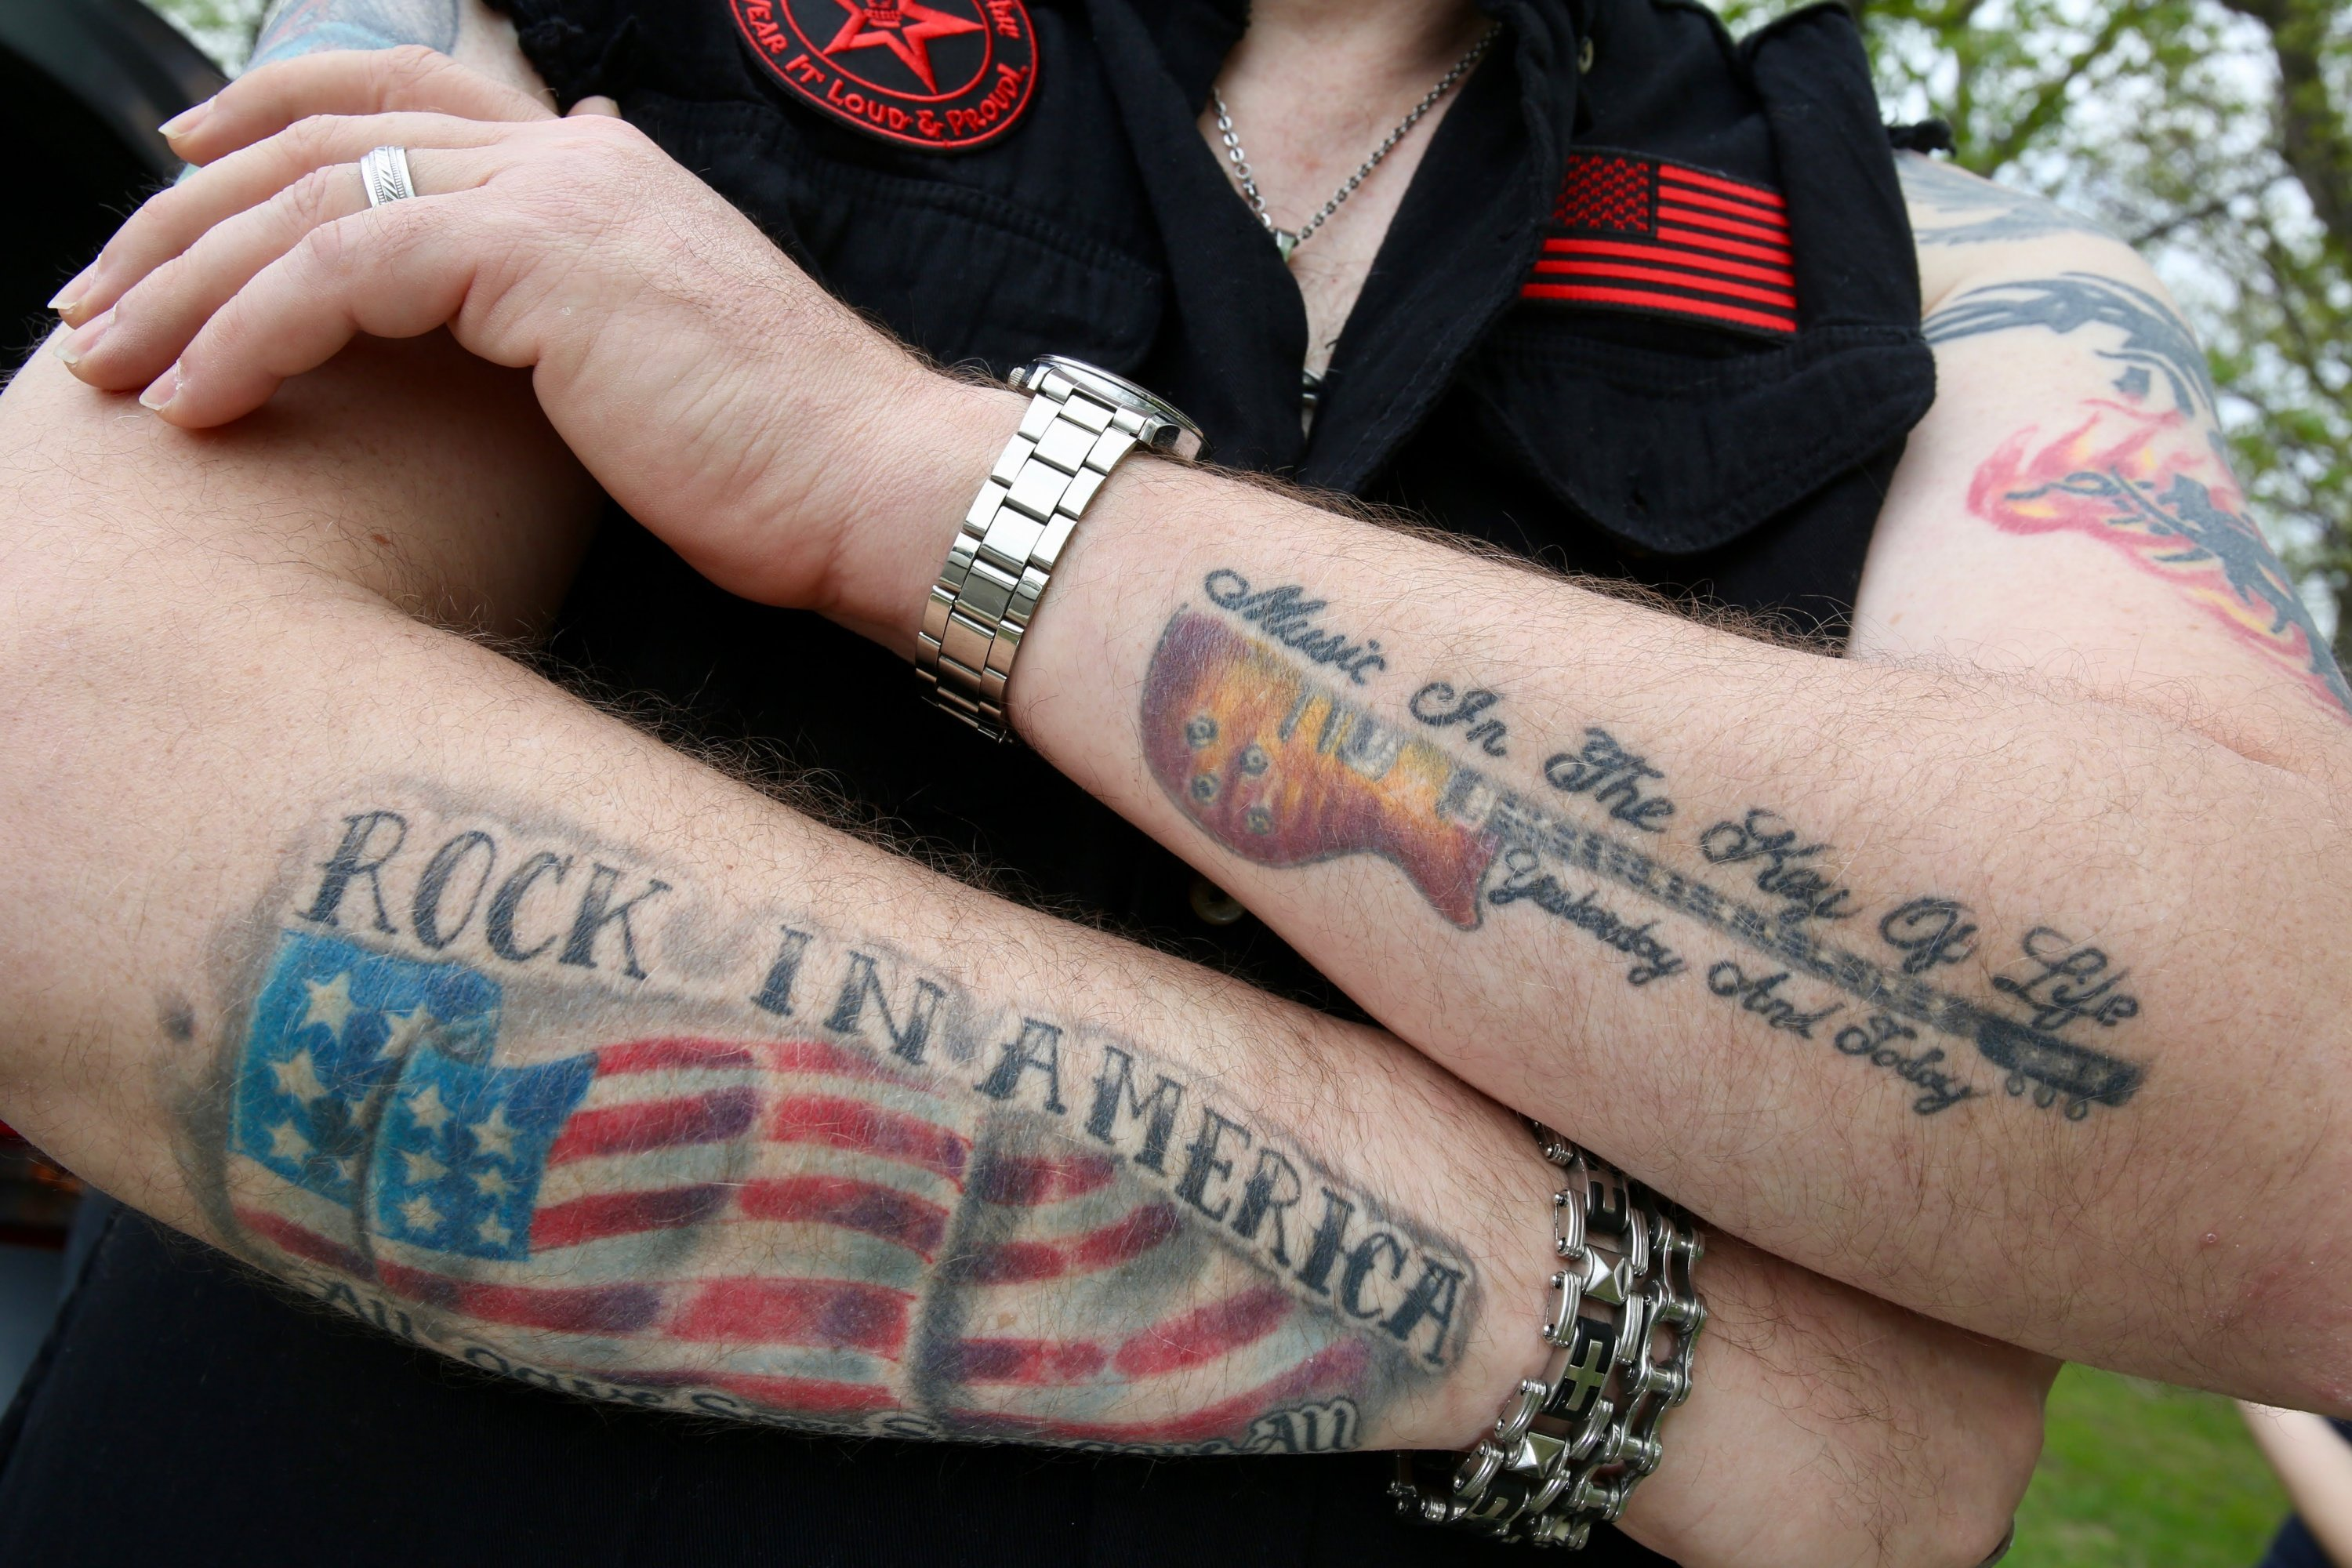 Garry has a lot of tattoos that show off the various metal concerts he's attended.